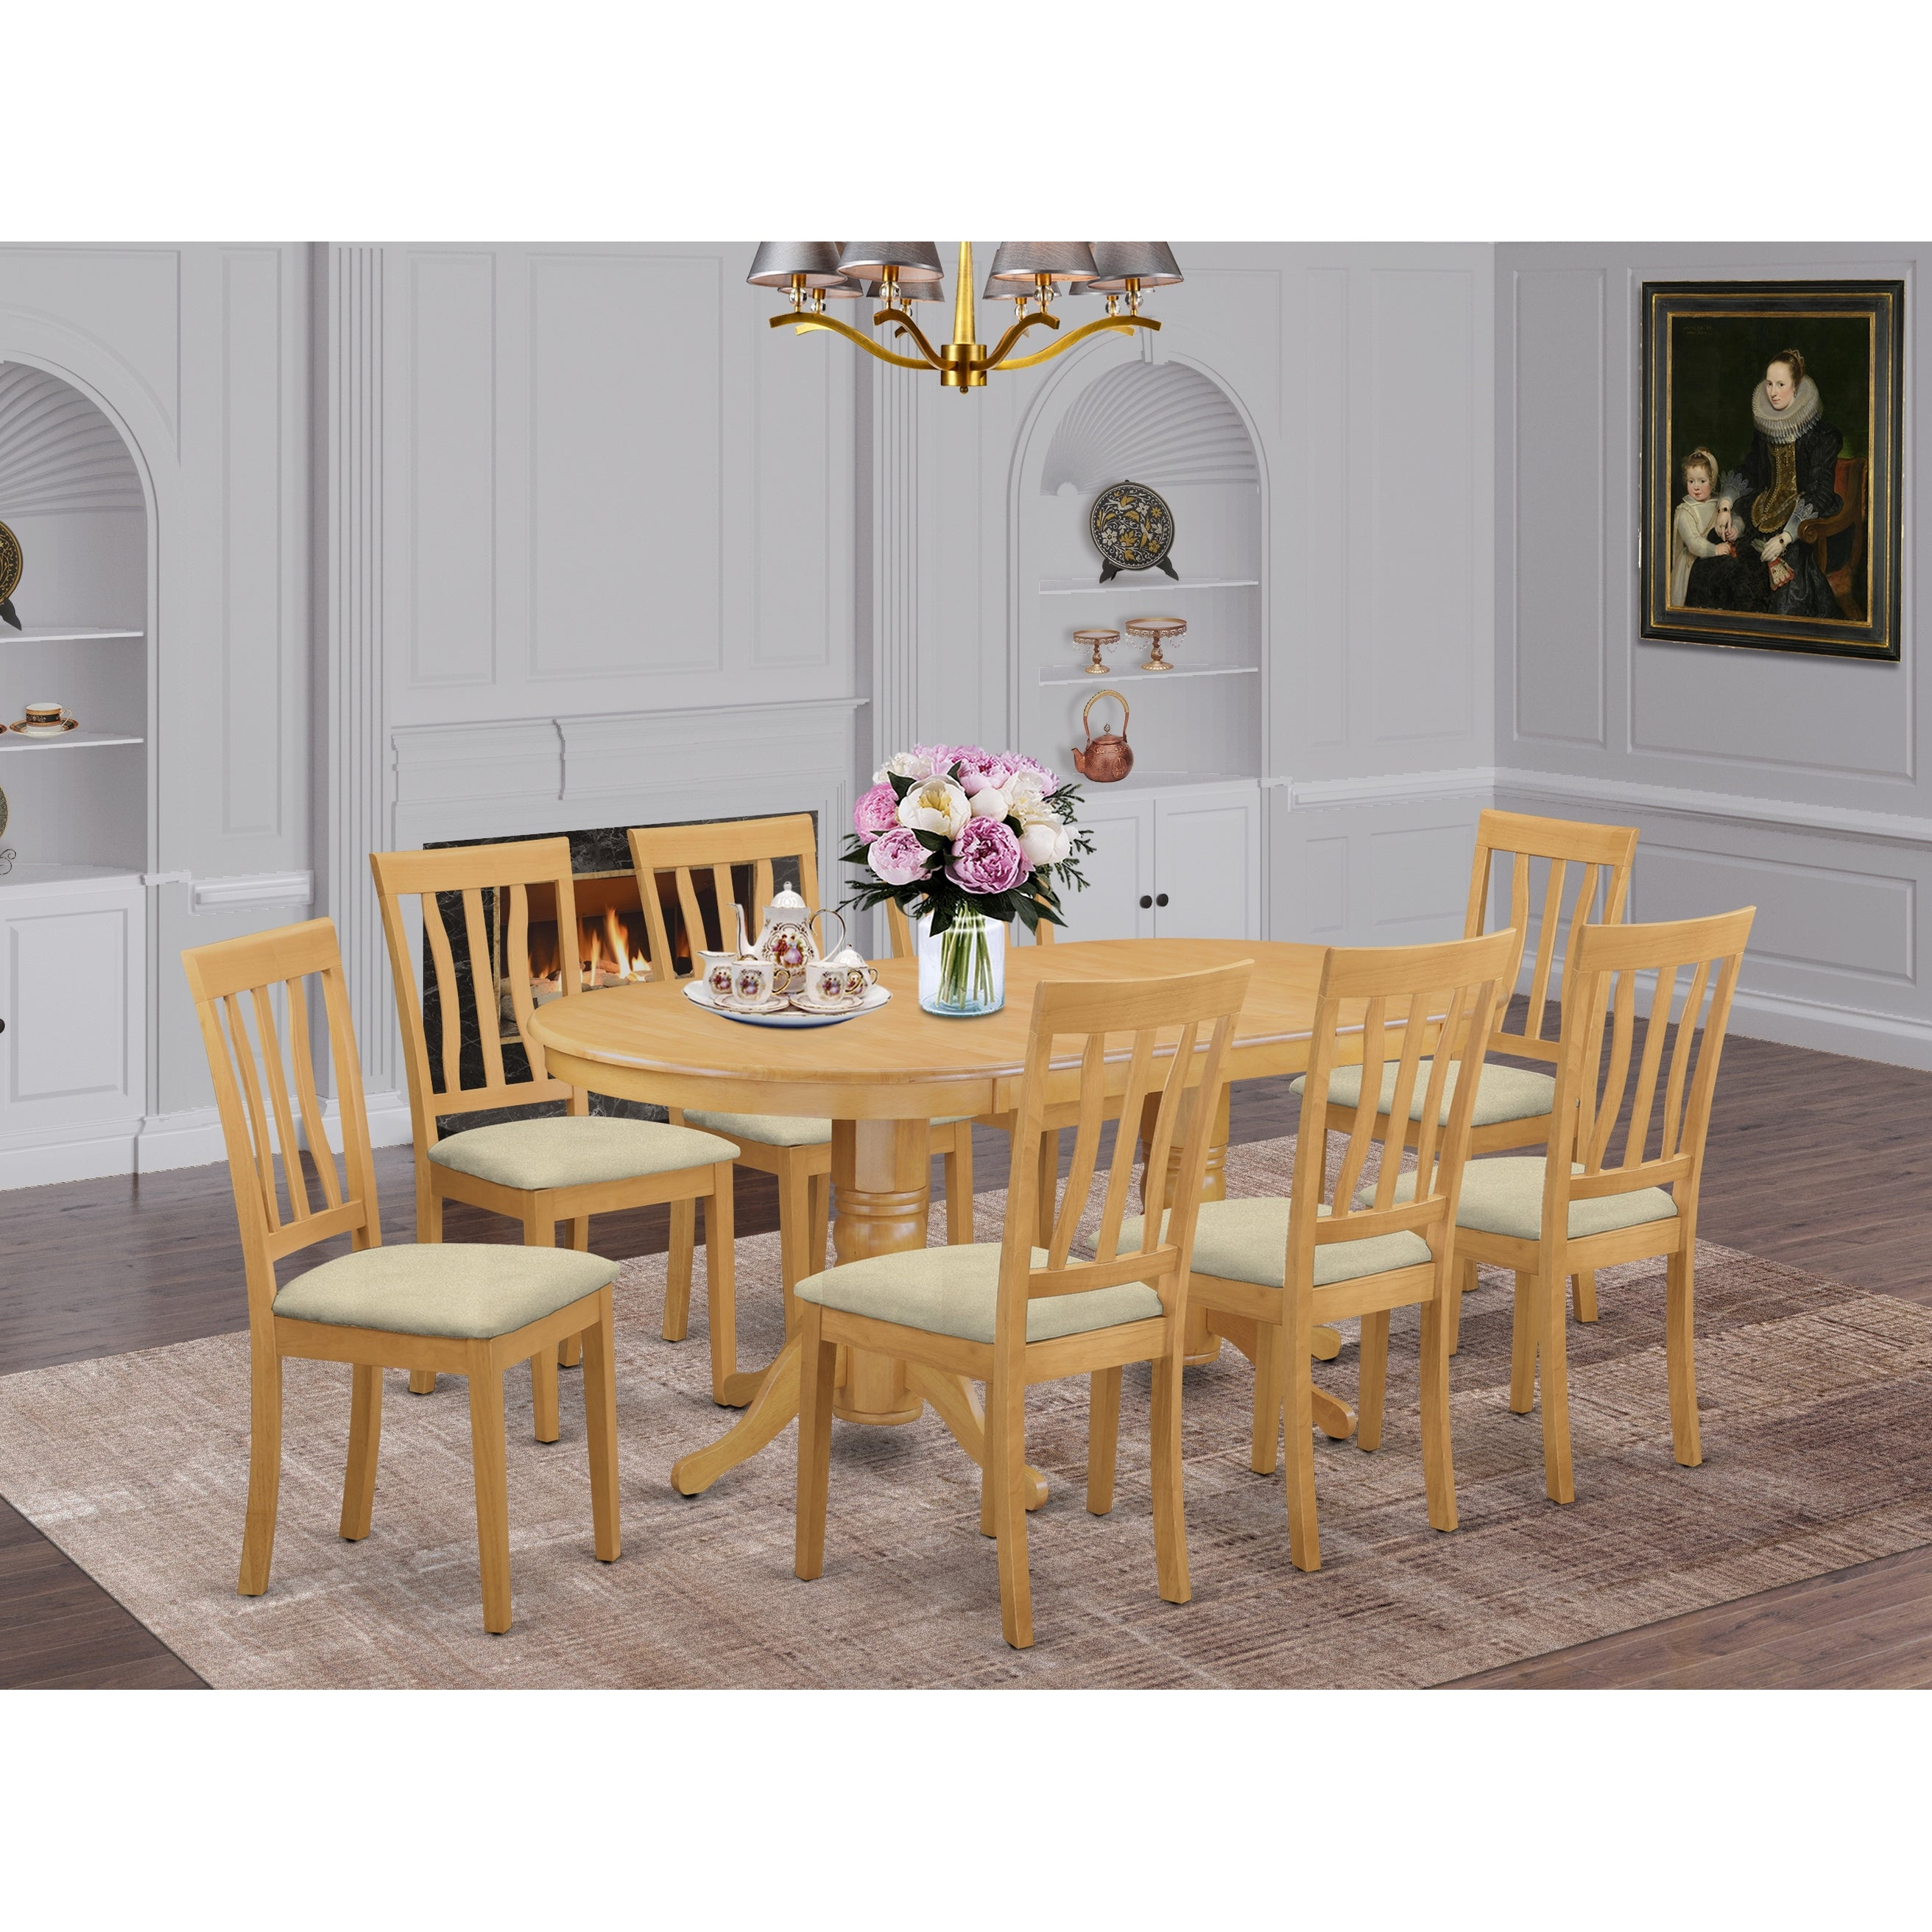 9 Piece Dining Set Dinette Table And 8 Kitchen Chairs In Oak Finish Overstock 14366647 Vaan9 Oak W